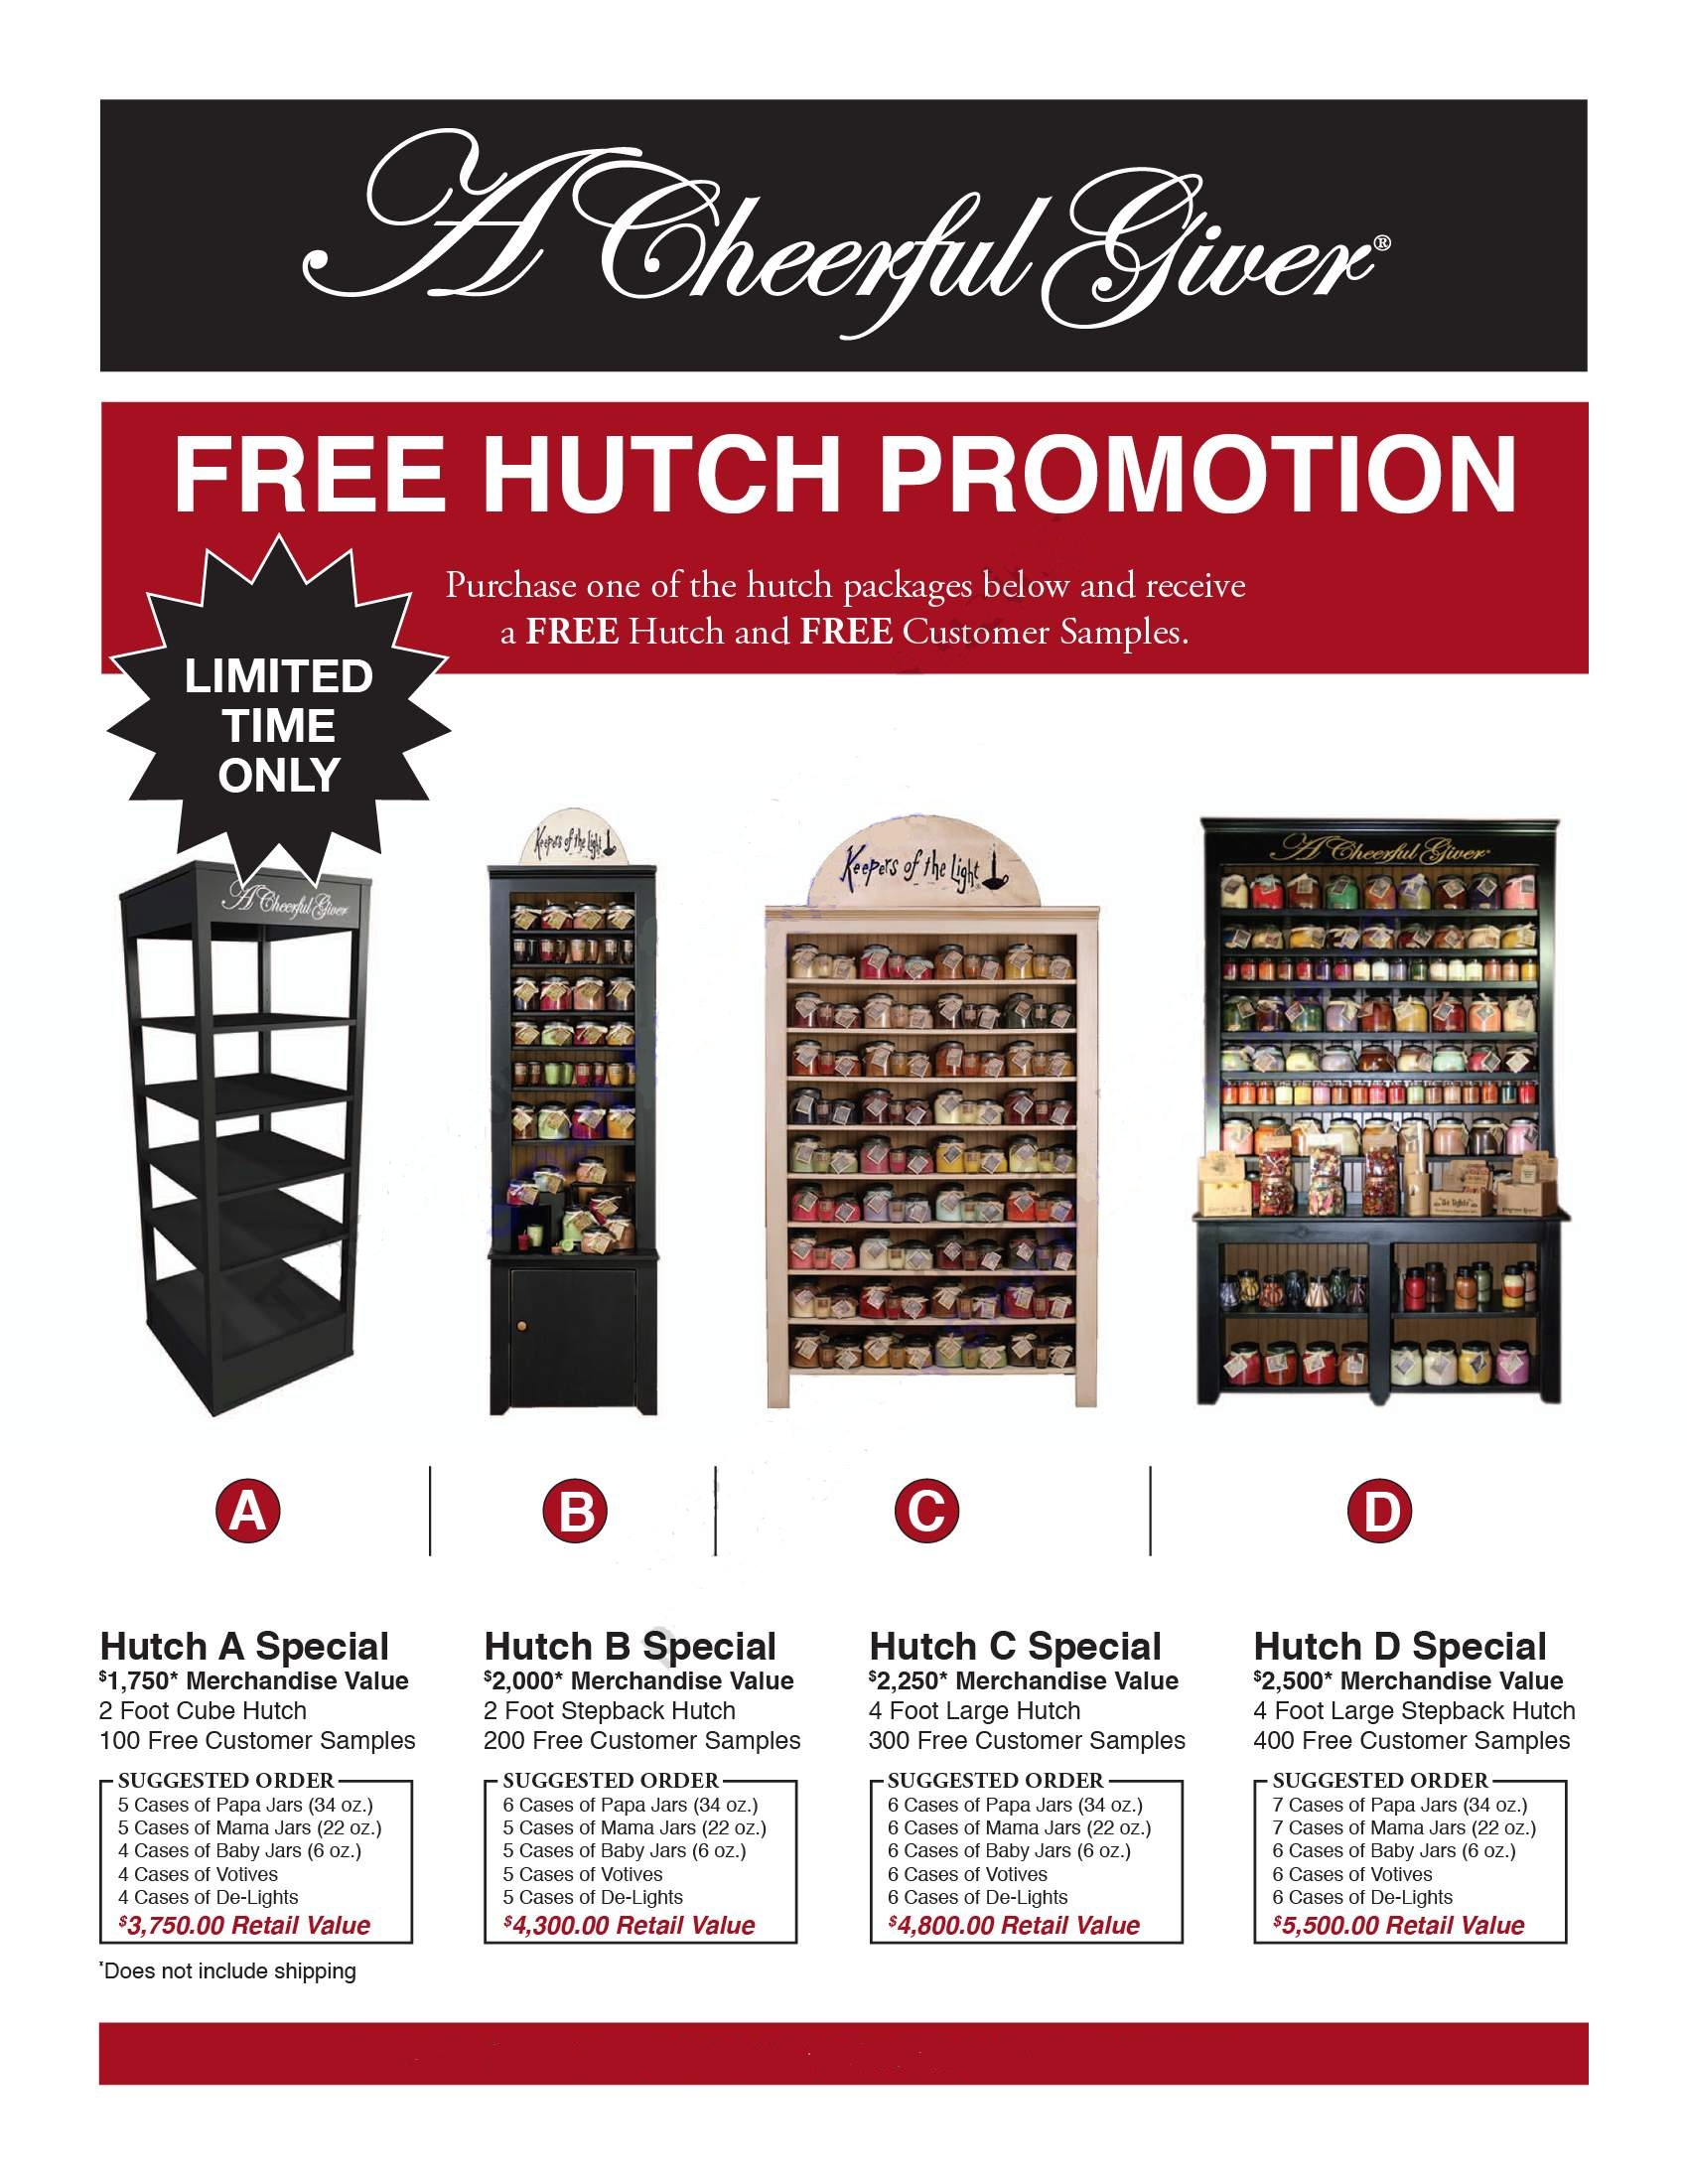 free hutch program  image